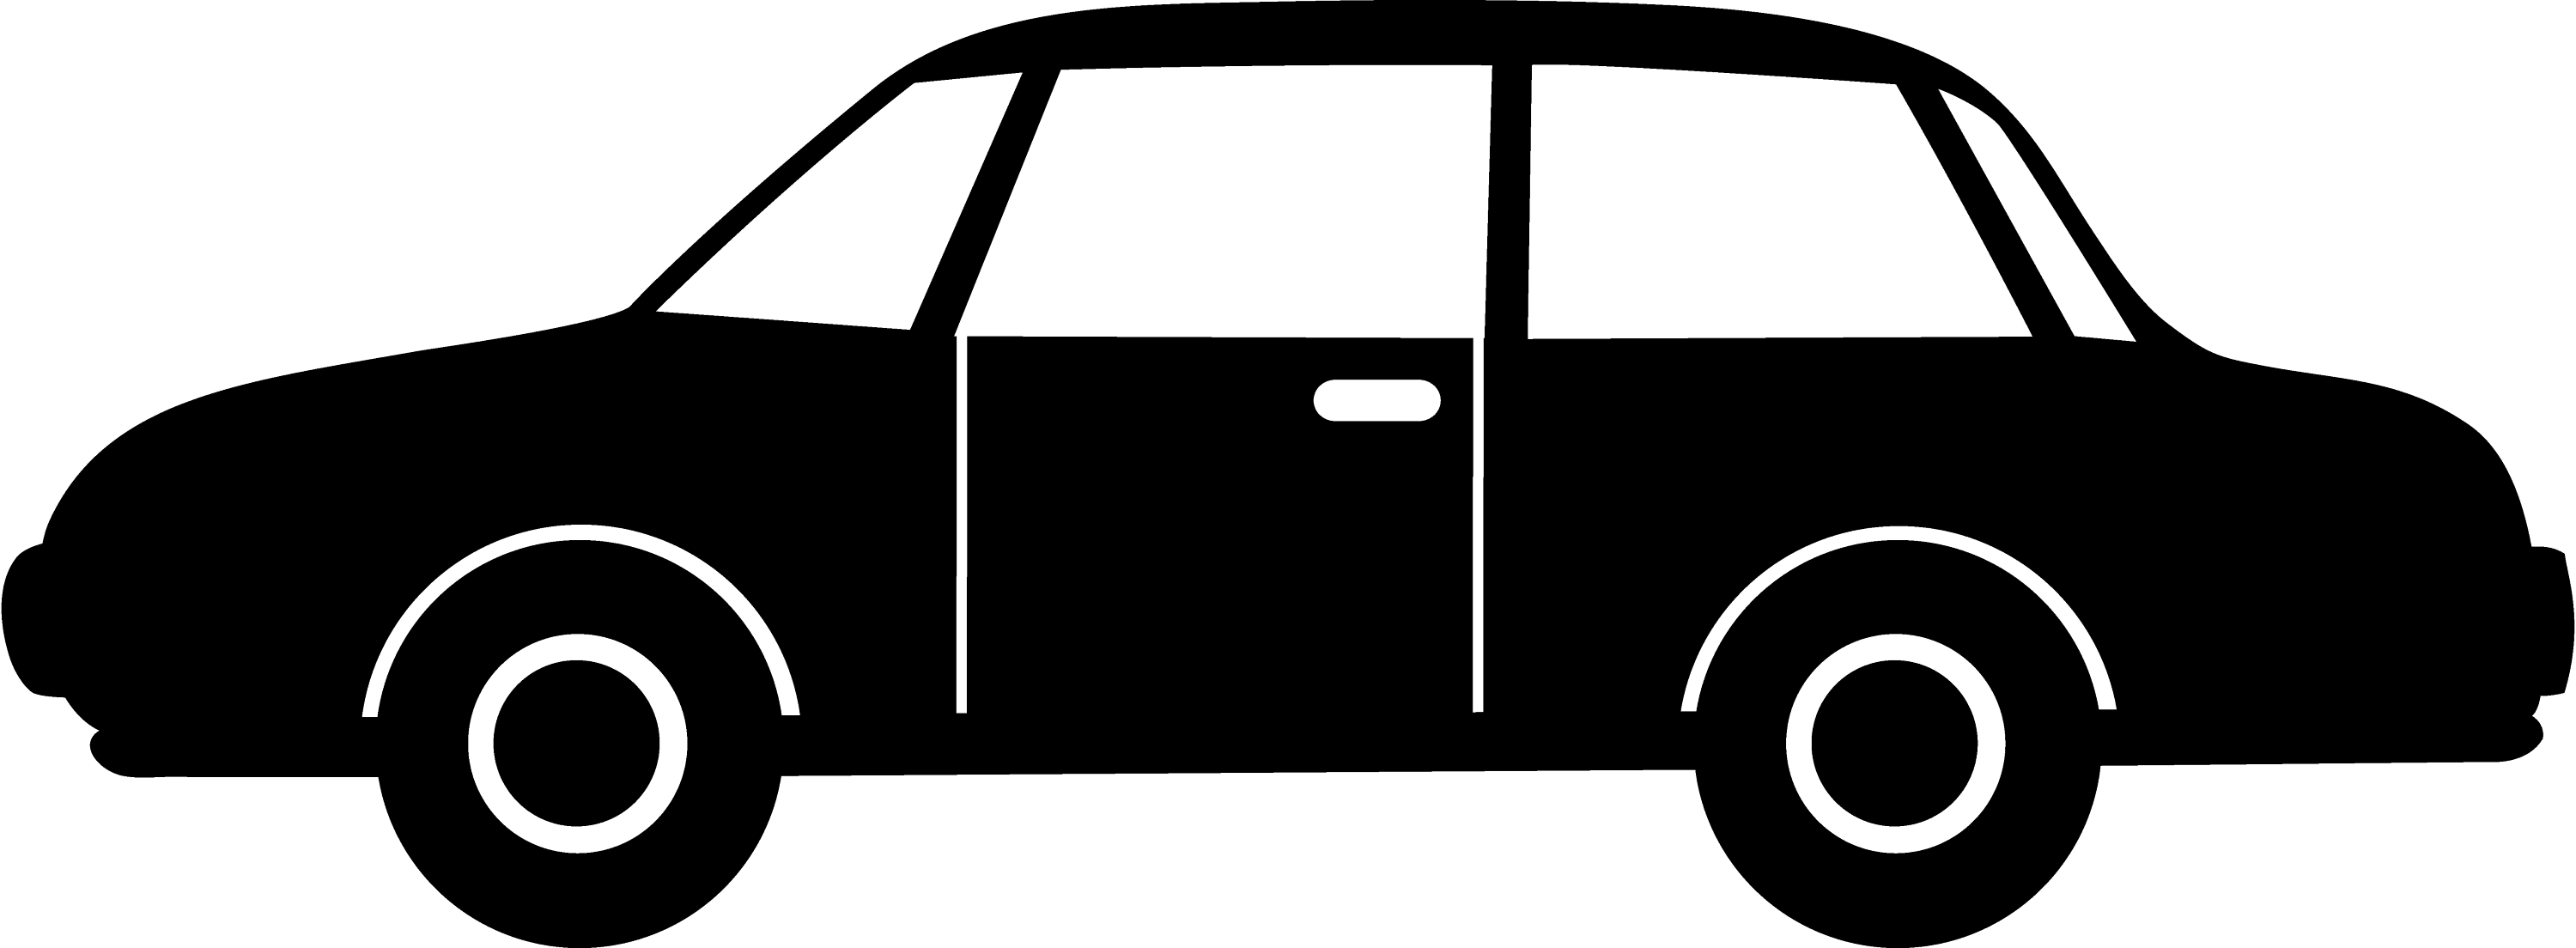 free car silhouette clip art - photo #2